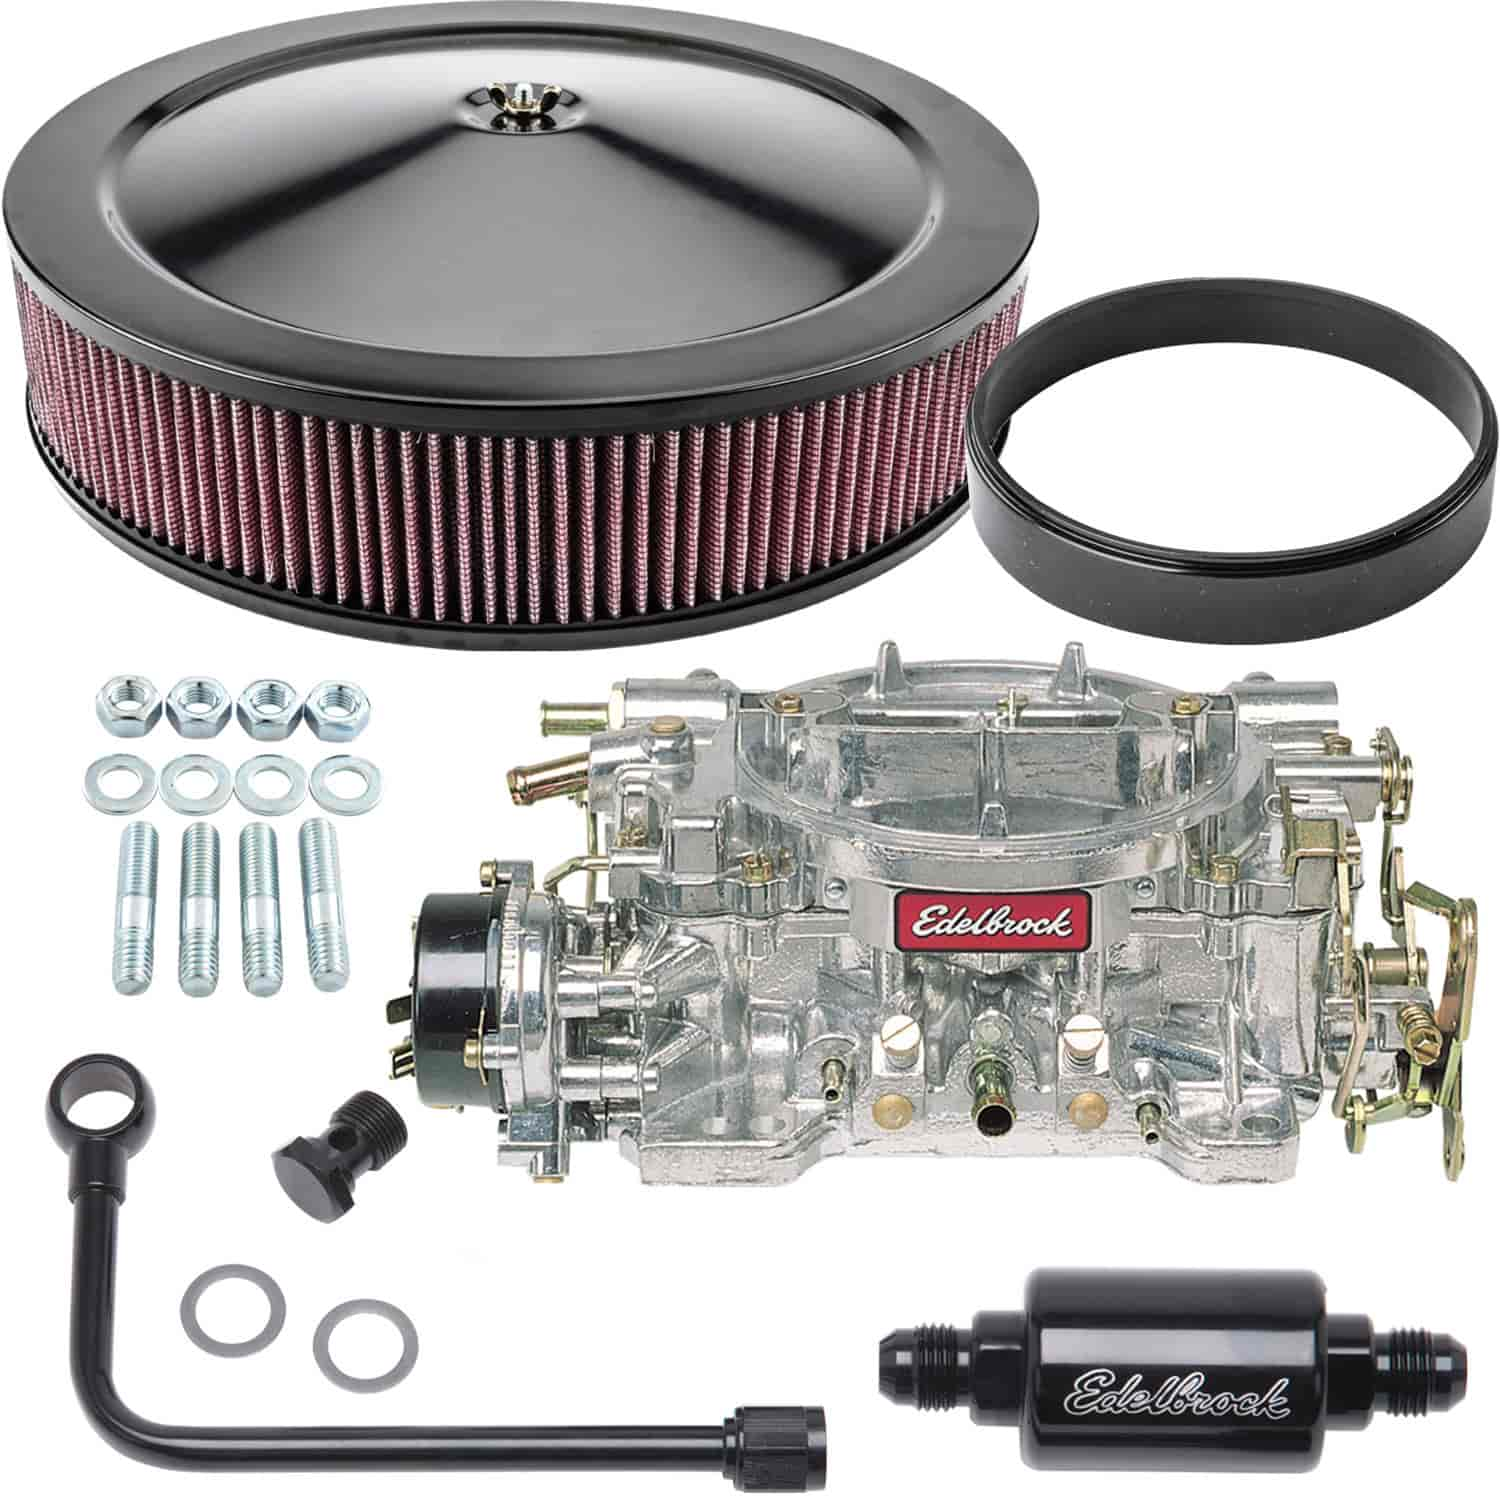 Edelbrock Performer Series 600 CFM Black Electric Choke carburetor Kit